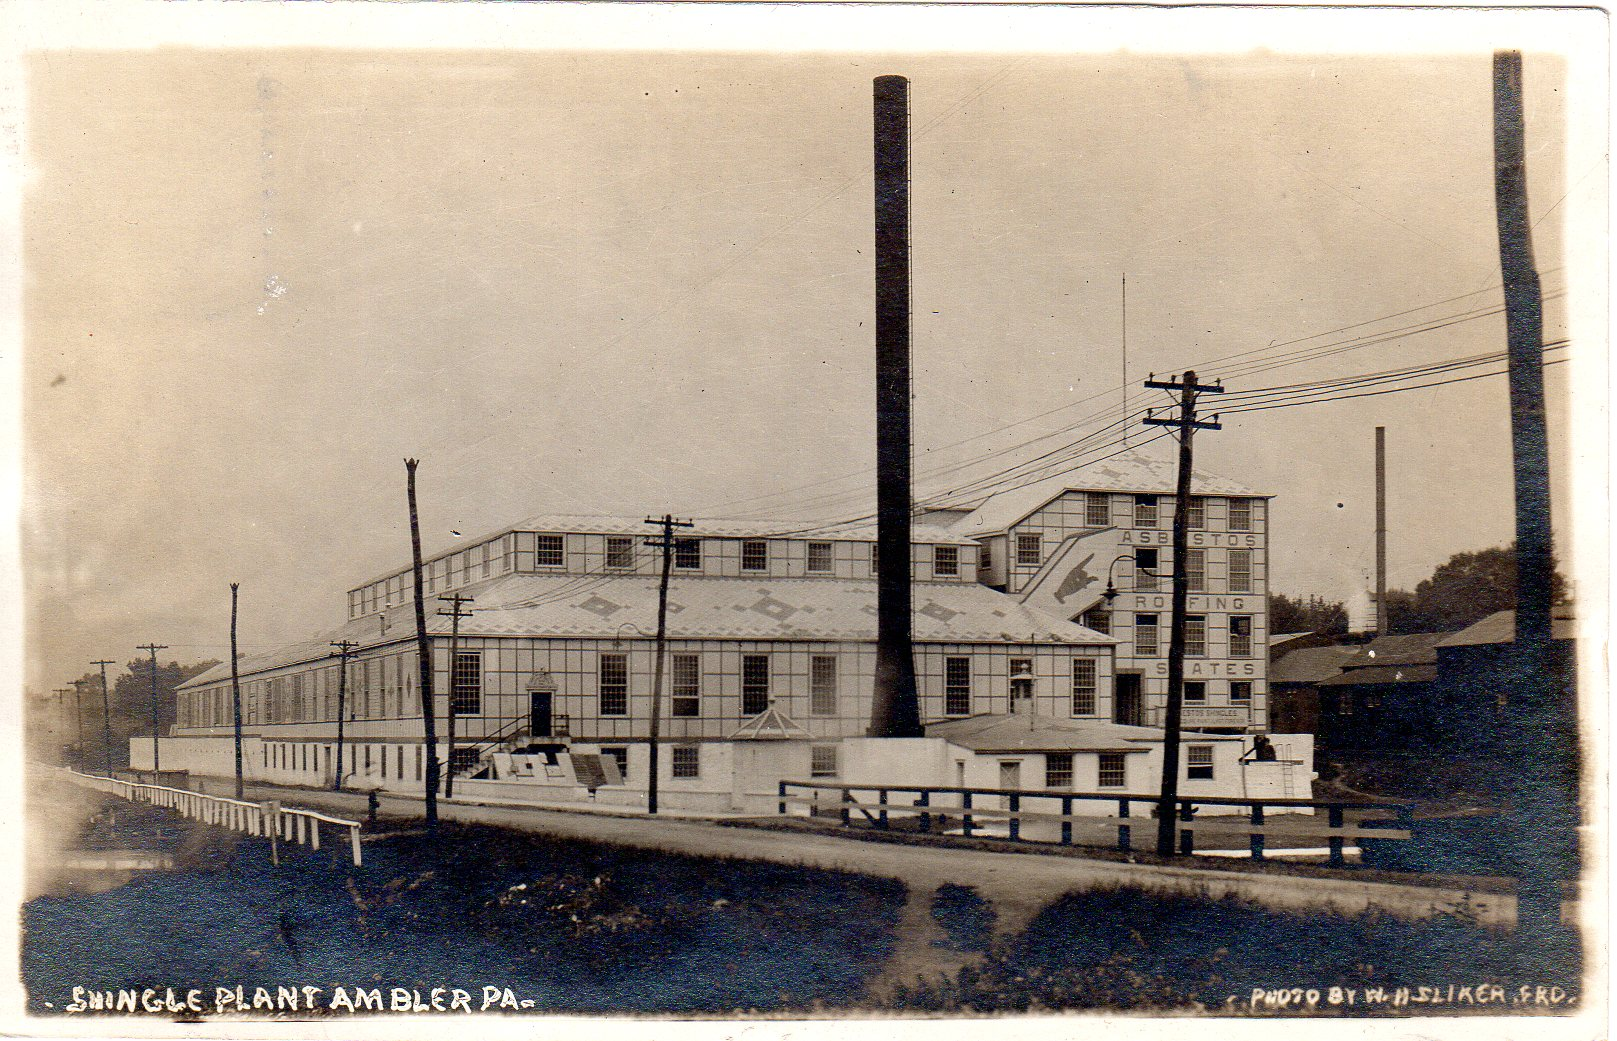 Post Card Collection (E Simon)_2682_63_Shingle Plant, Ambler, Pa